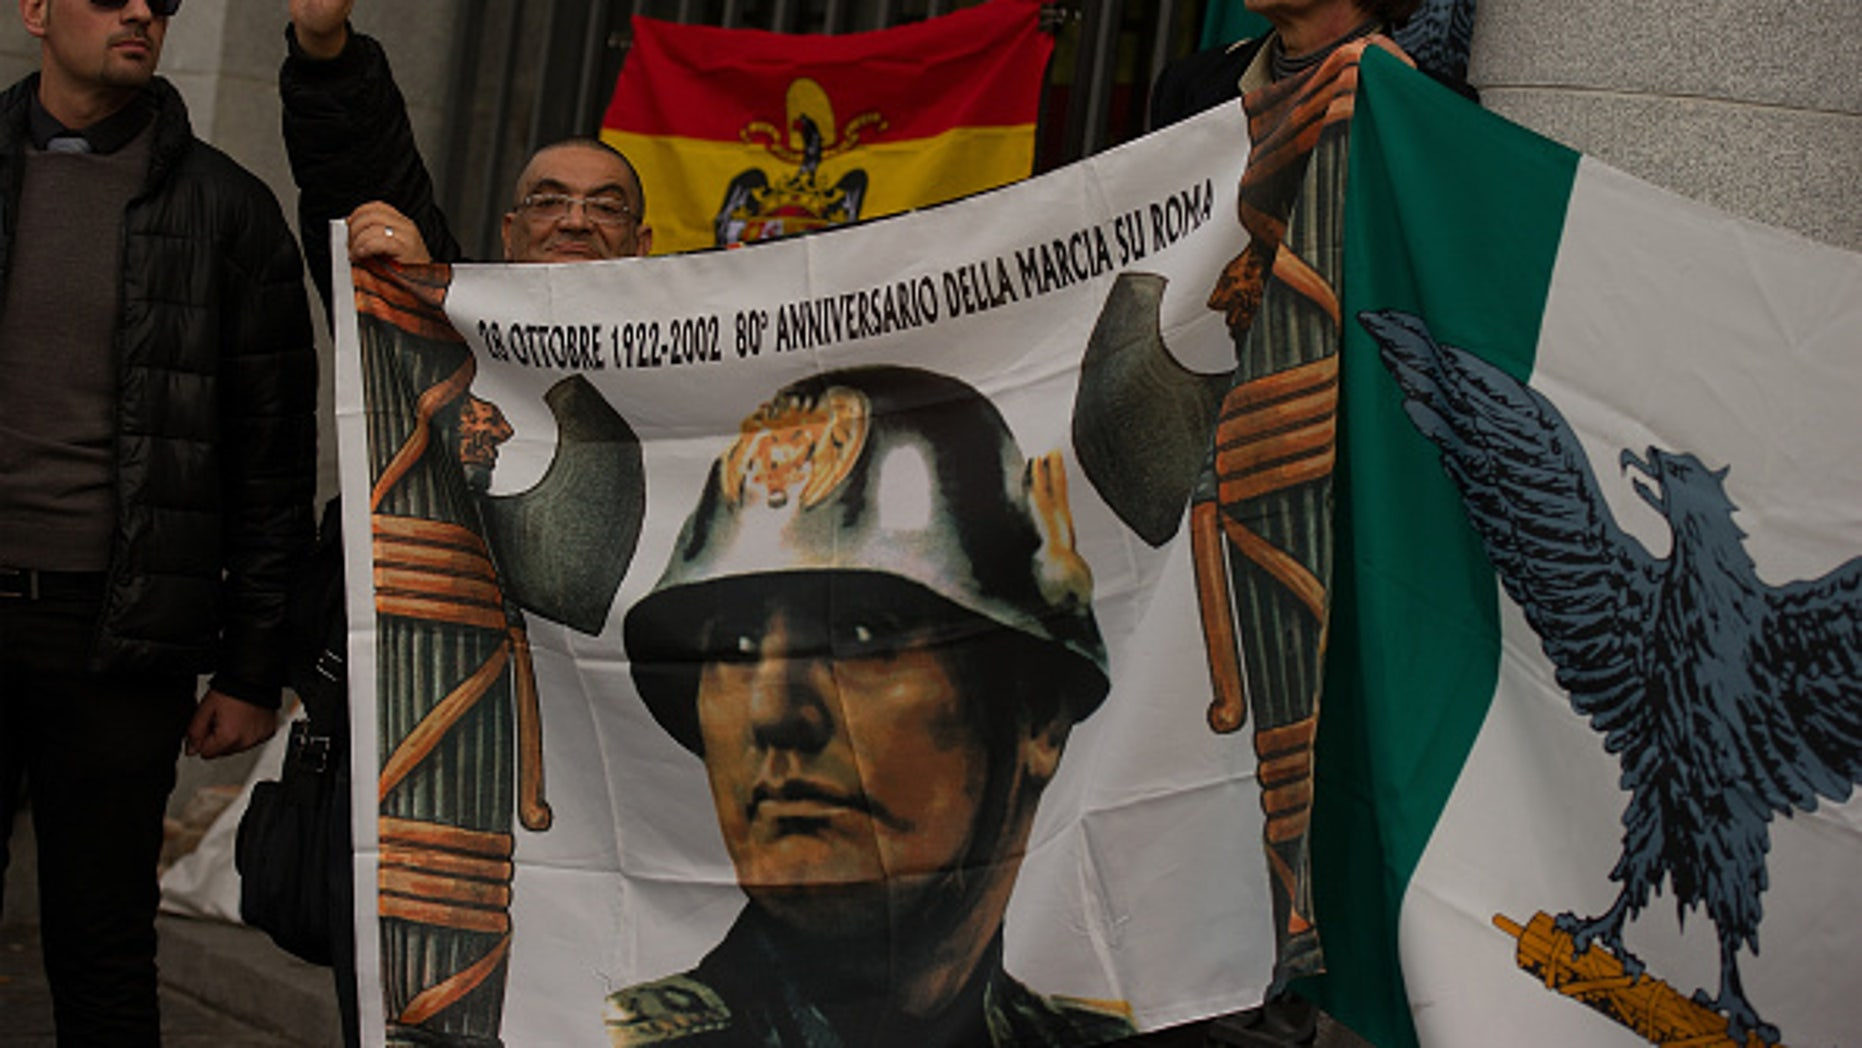 MADRID, SPAIN - NOVEMBER 23:  Italian fascists attend a rally to celebrate the 39th anniversary of the death of Spanish dictator General Francisco Franco at Plaza Oriente square in Madrid, Spain.